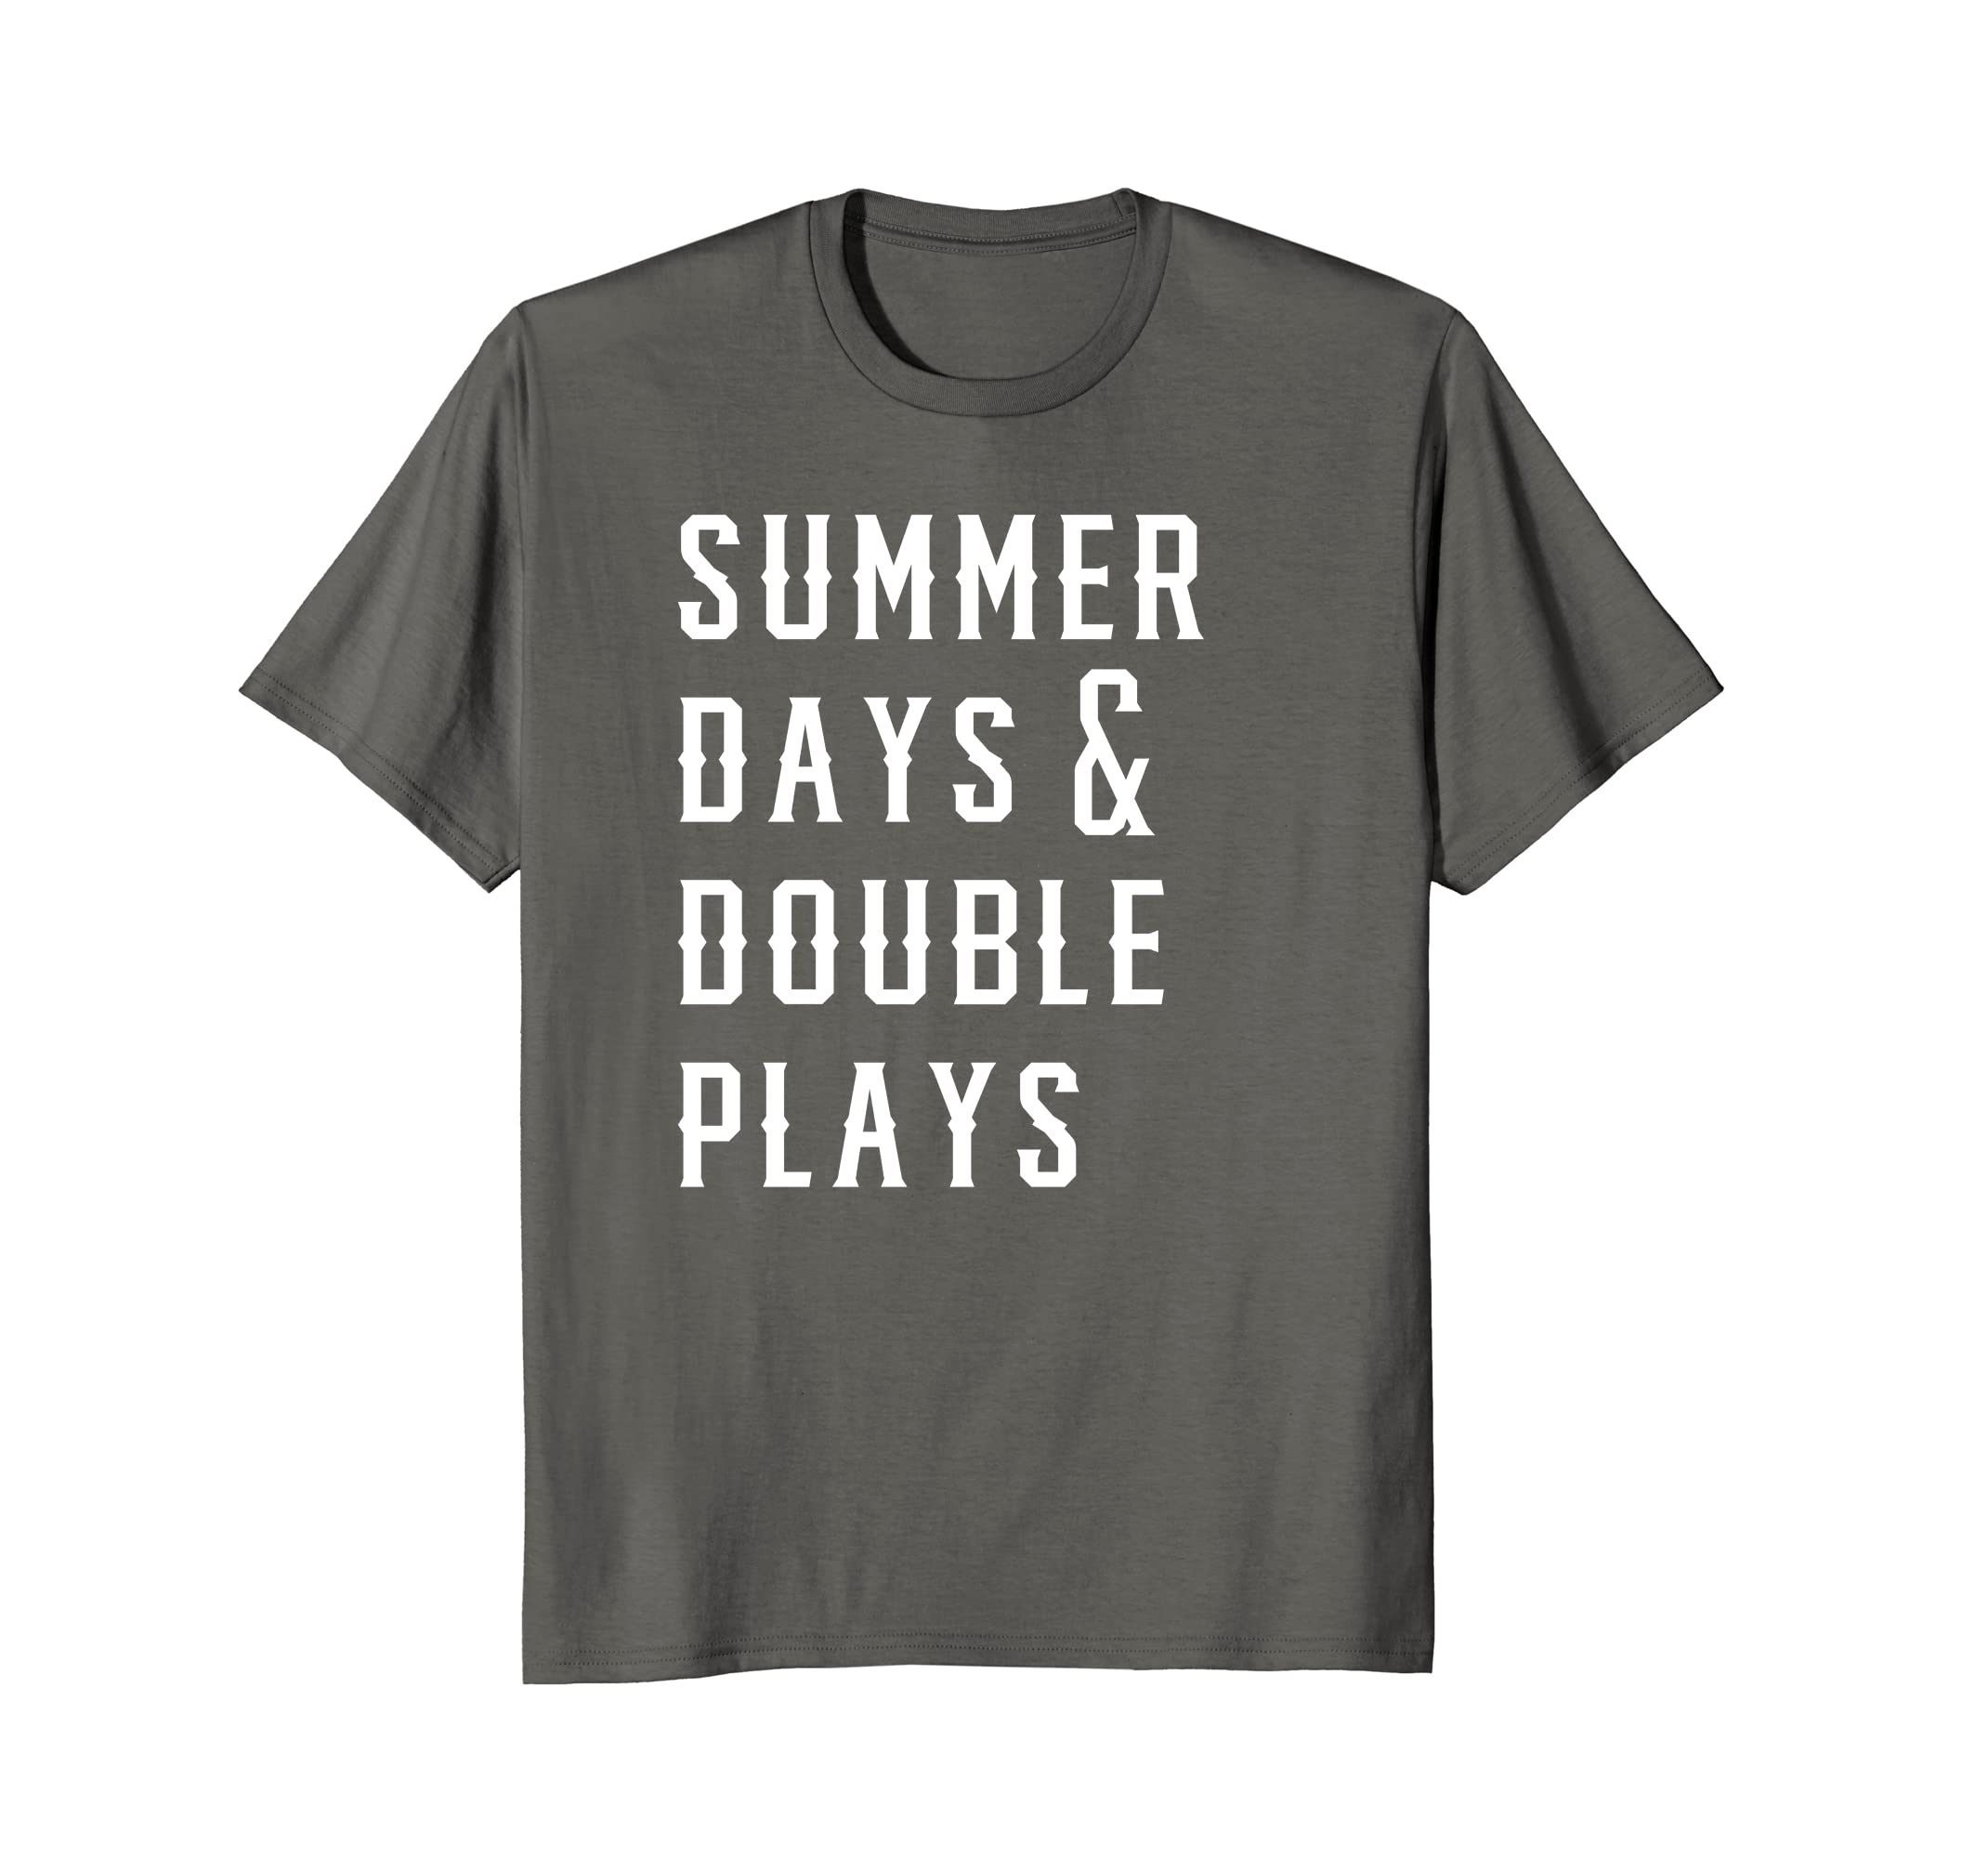 d1976657afa6 Amazon.com  Summer Days And Double Plays Shirt  Clothing